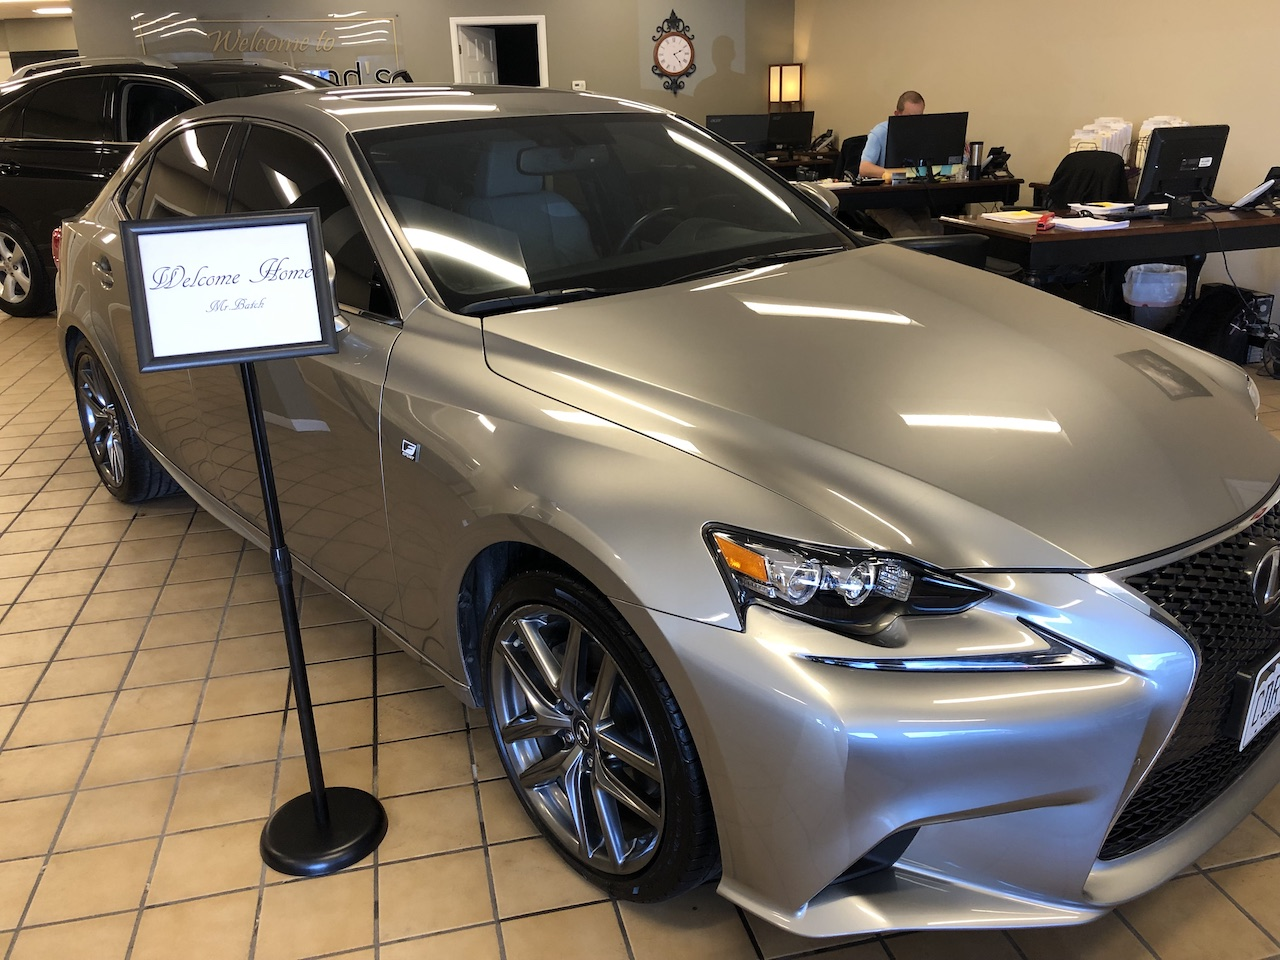 Best Lexus Auto Body Shop in Denver - Nylund's Collision Center